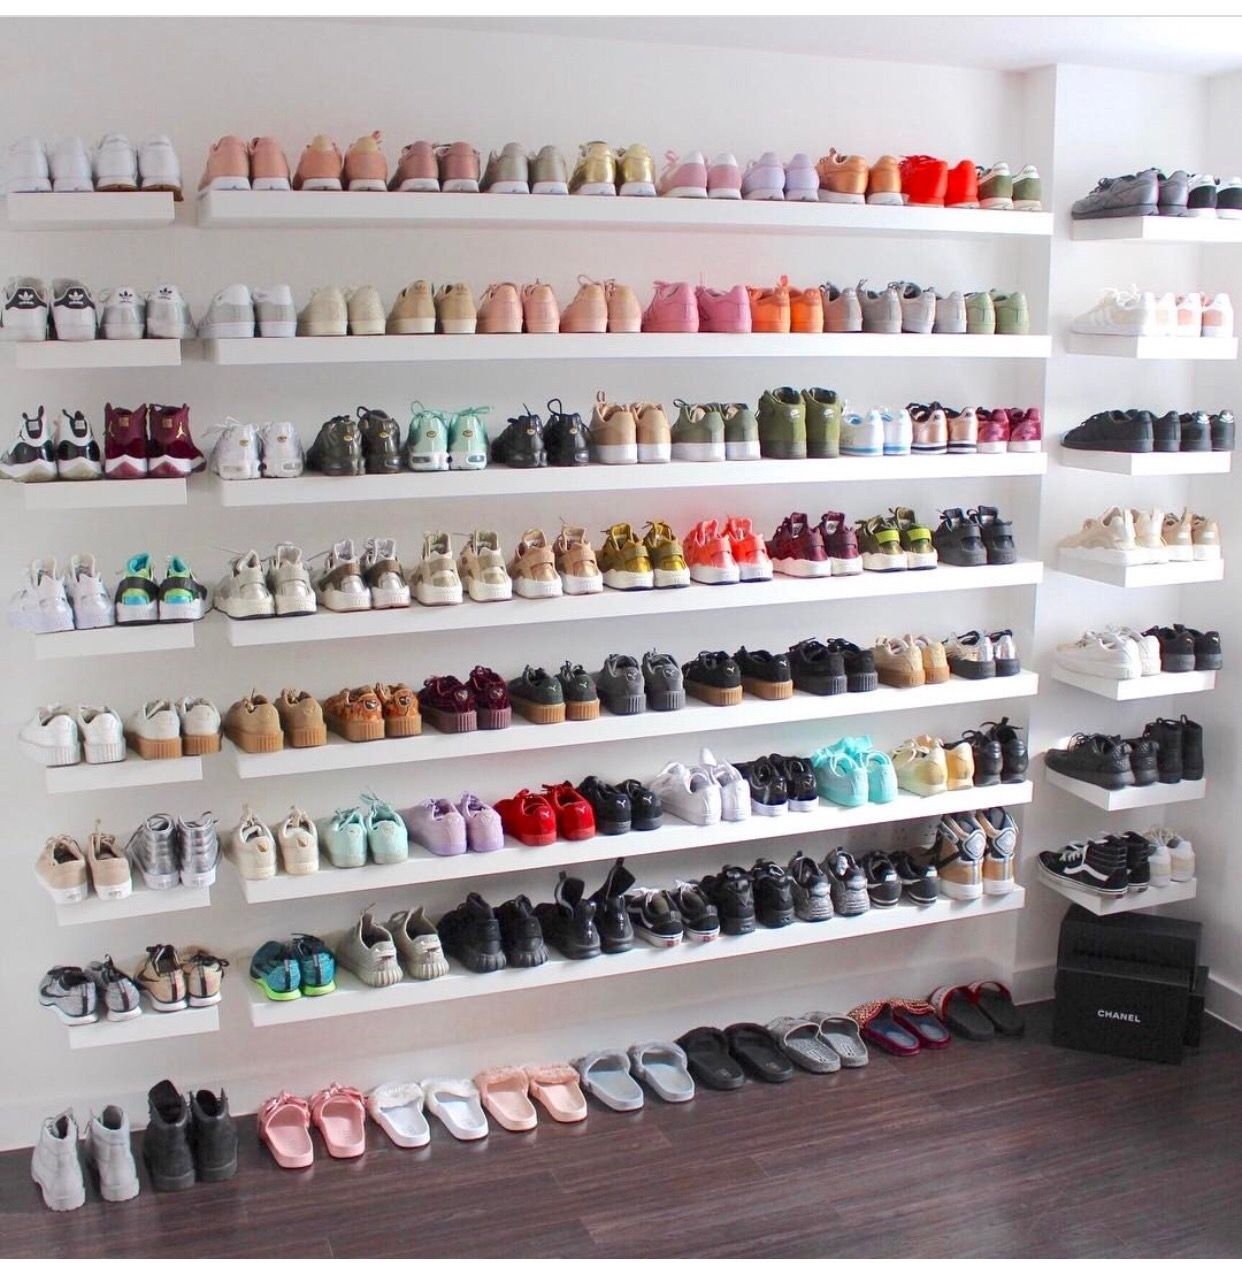 pin cassie talamantez clothing storage shoe room shoes floating wall shelves for simple and ridiculous tips can change your life shelf bedside beds plants kitchen windows books